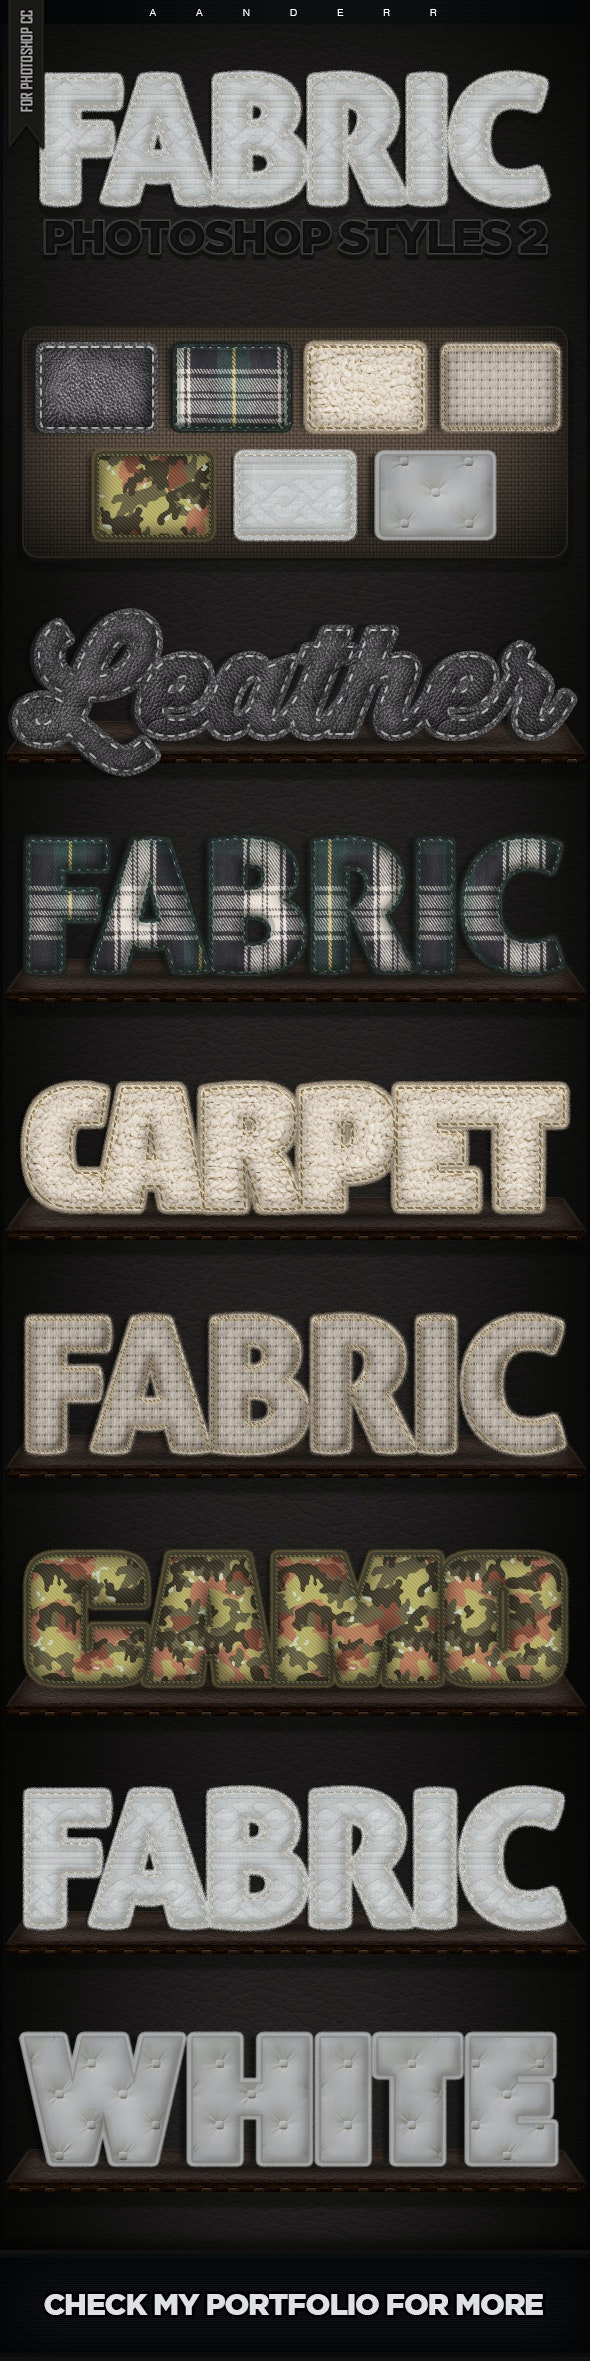 Fabric Photoshop Styles 2 - Text Effects Styles